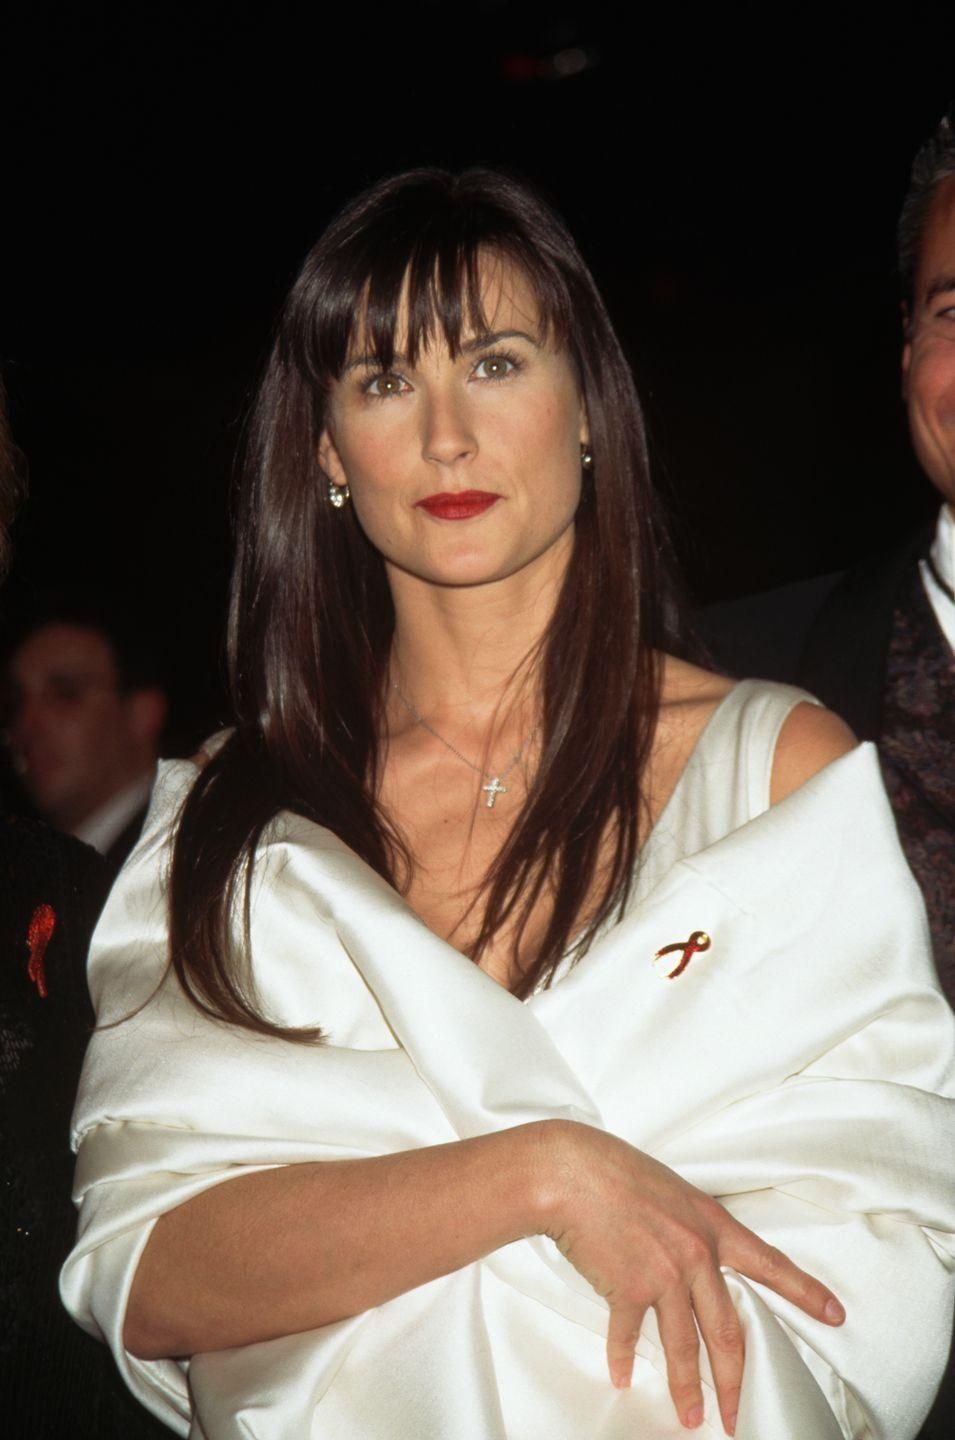 <p>After her role in films like <em>Ghost, </em>Demi Moore was one of the hottest young actresses in Hollywood and known for her striking hair. </p>